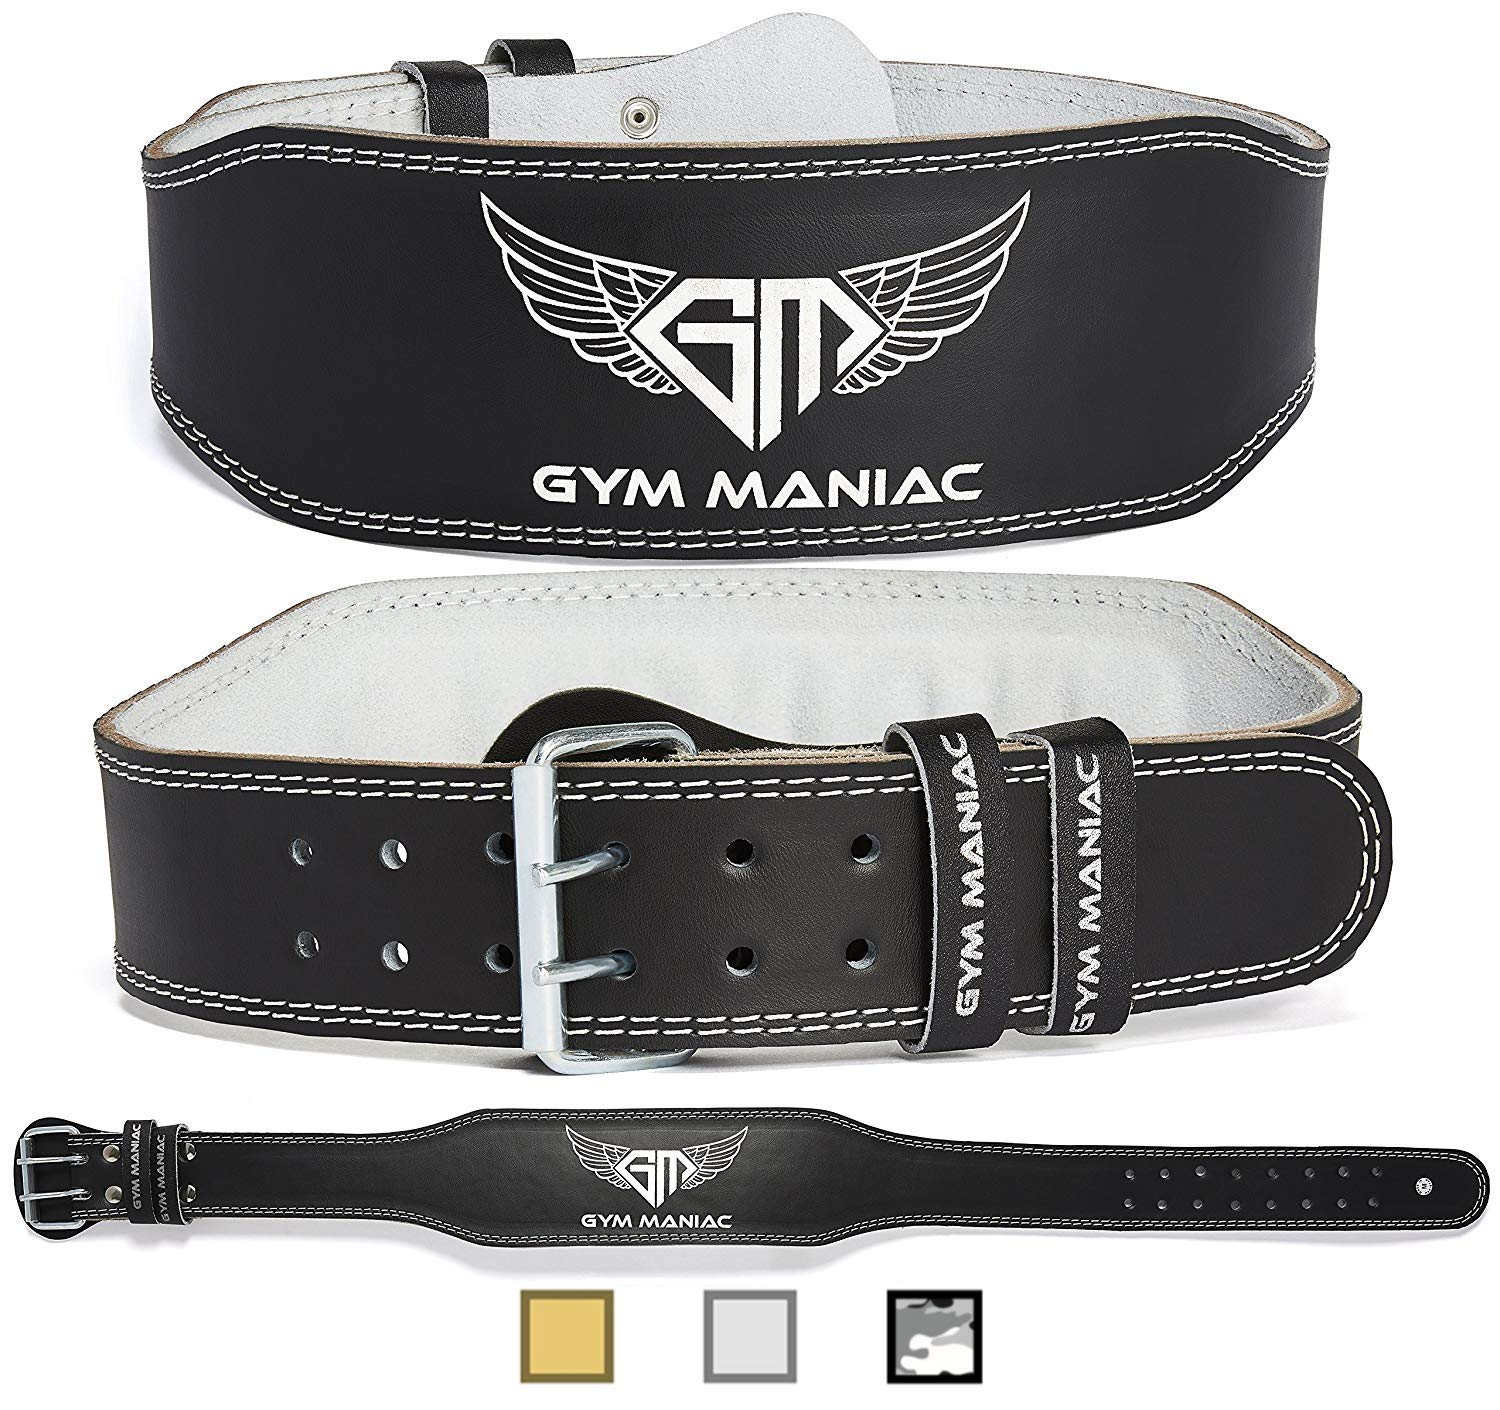 Gym Maniac Weight Lifting Waist Gym Belt | Adjustable Size, 2 Prong Buckle, Comfy Suede, Reinforced Stitching | Support Your Back & Alleviate Pains (Silver, Small)